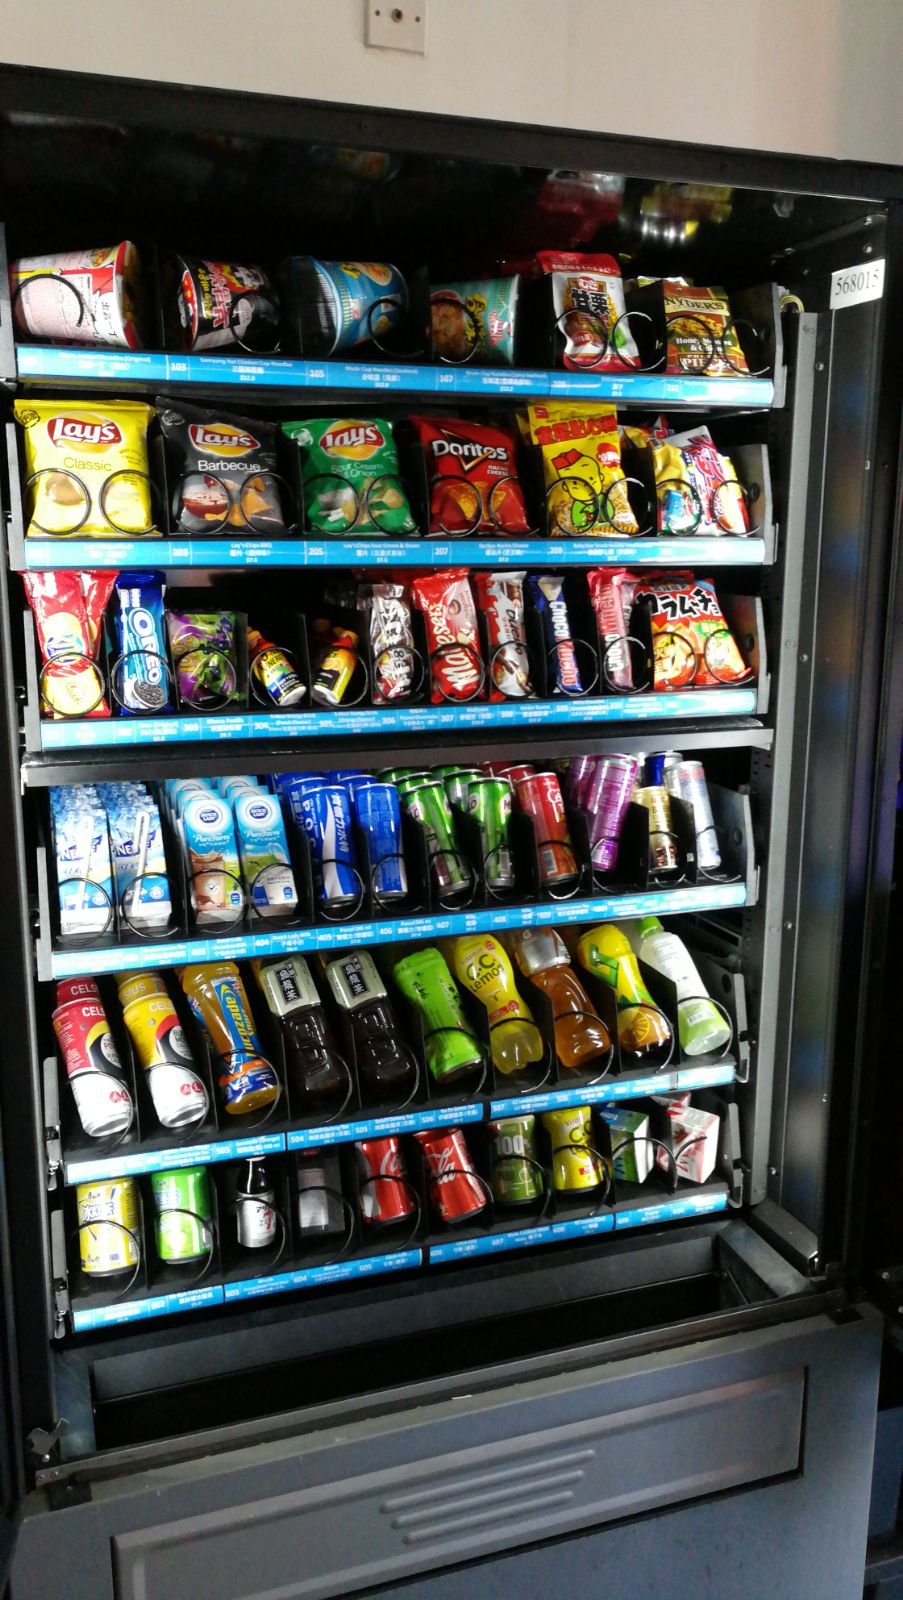 Freshup, vending machine hk, interactive, food, beverage, smart retail, convenient, vending services, professional, universities, PolyU, college